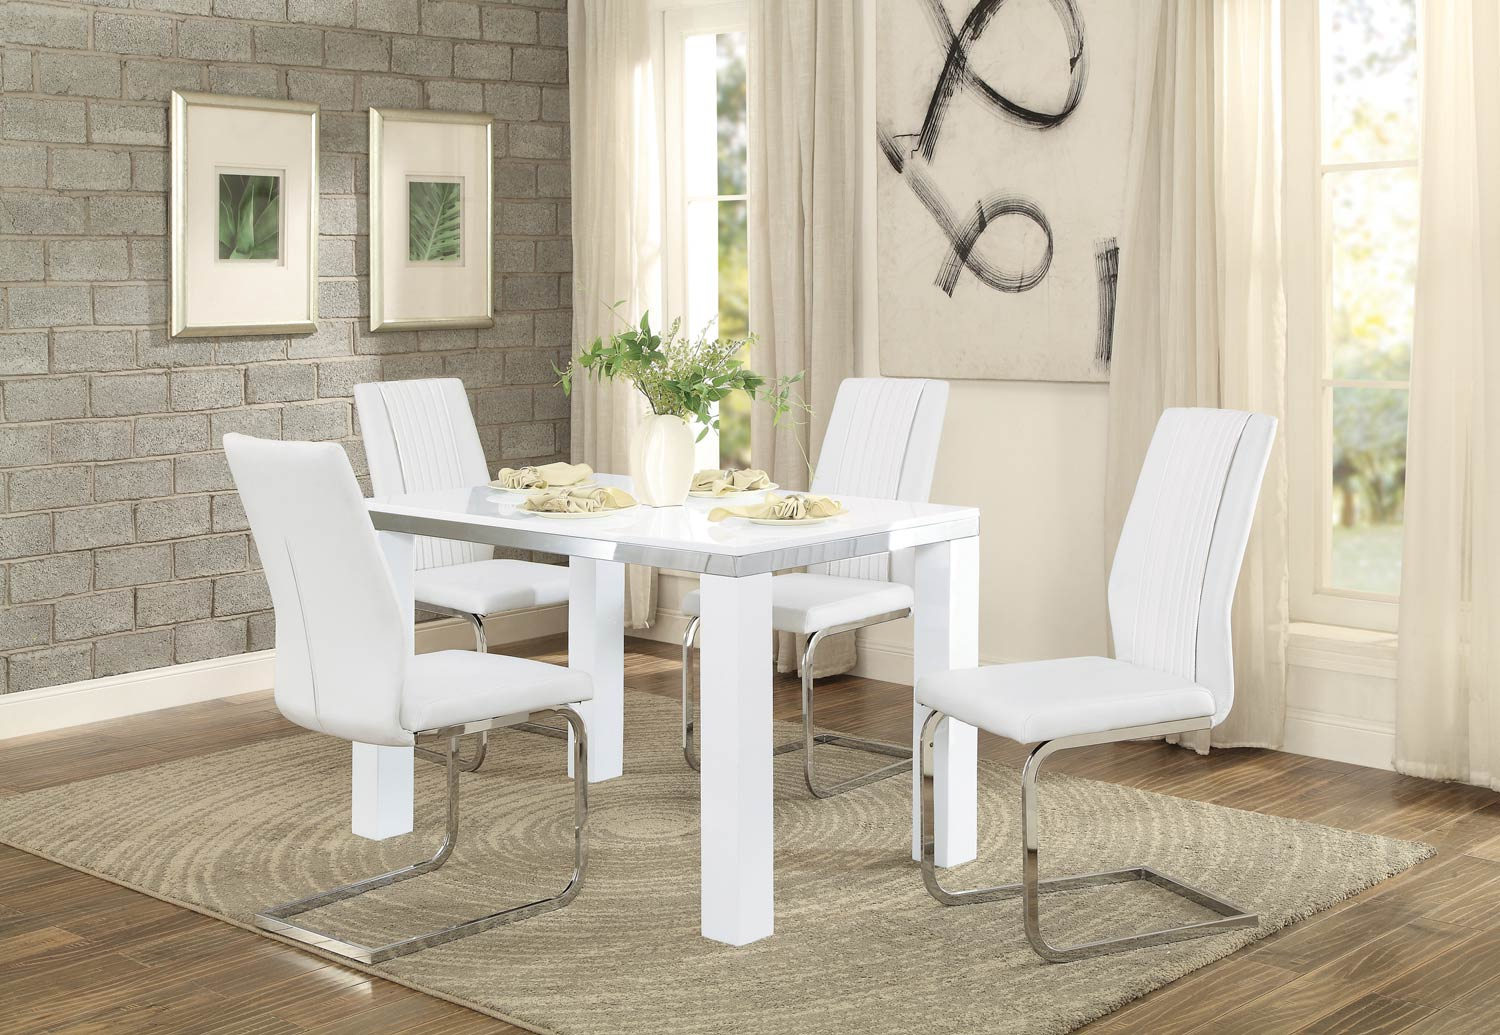 Homelegance Rohme Dining Set - Glossy White/Chrome